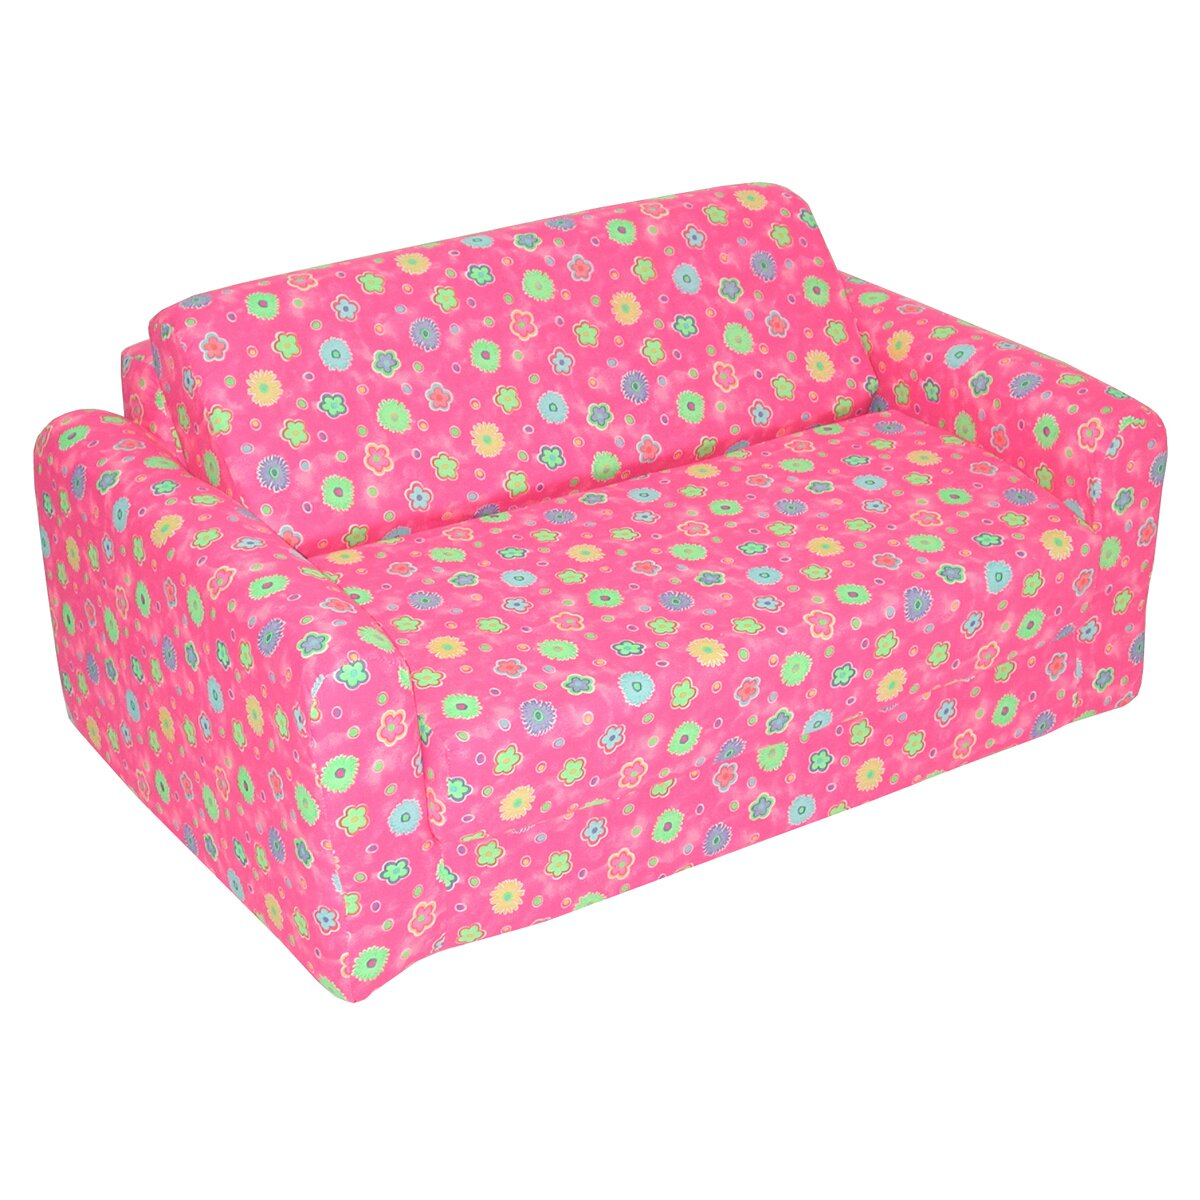 Spongebob Flip Open Sofa TheSofa